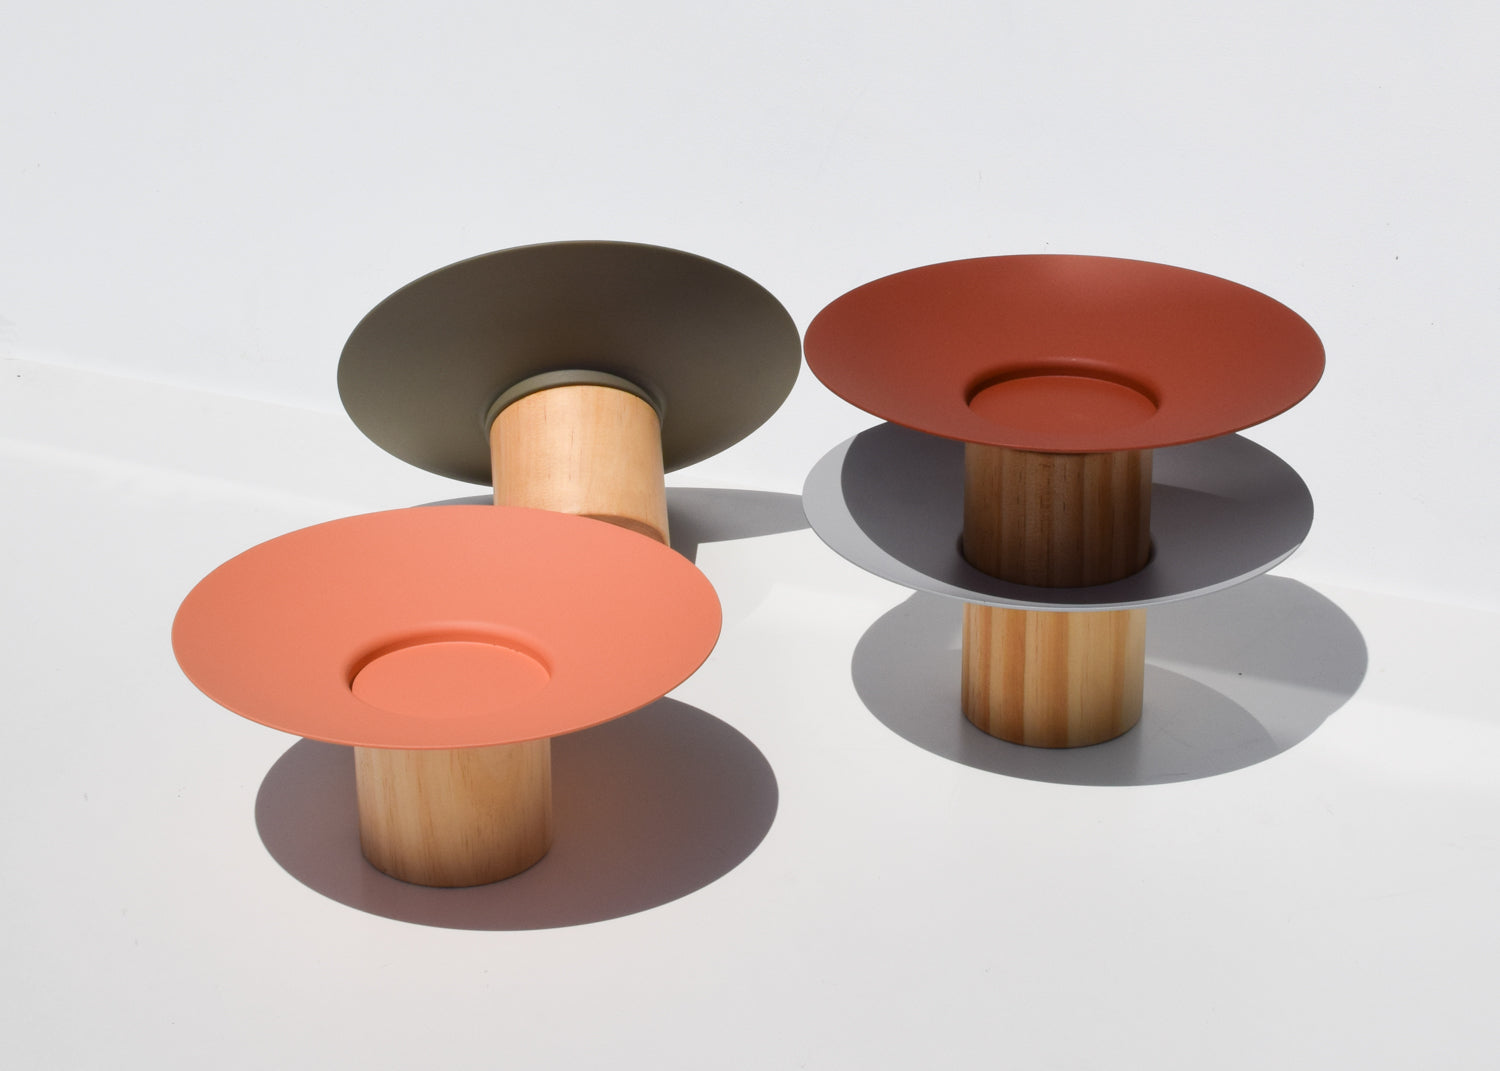 Made of steel and pine, the Platform Bowls combine the two materials for an entirely unique design.